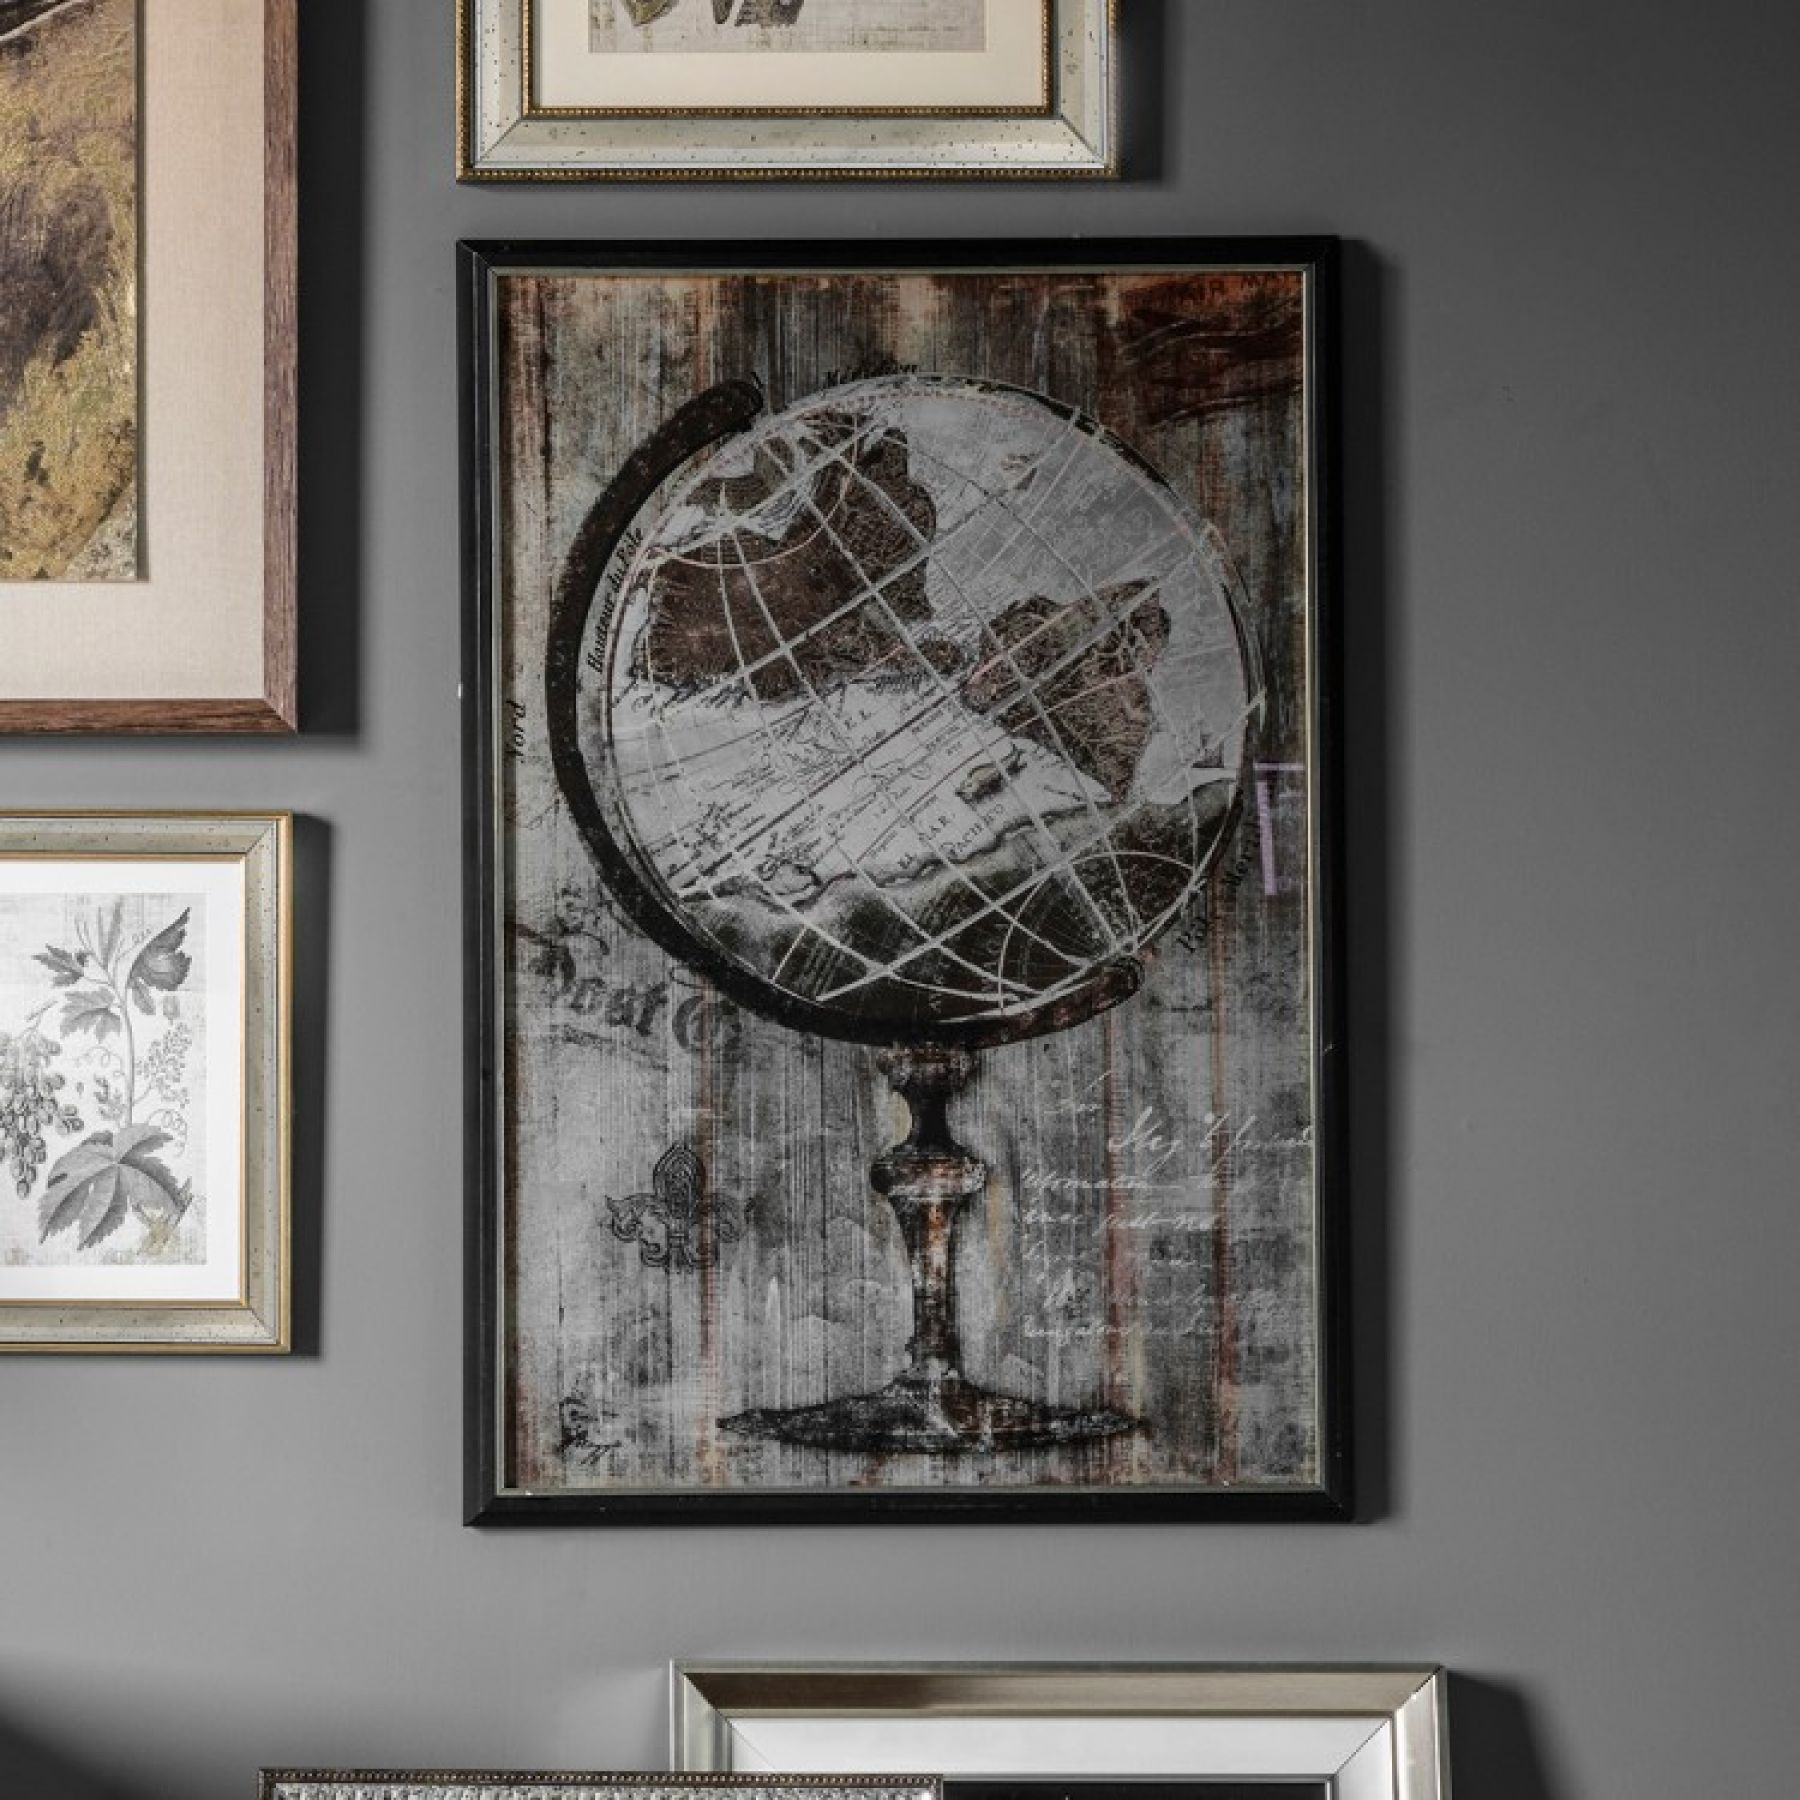 Home / Pictures u0026 Art / Large Antique Globe Wall Art & Magazzino Large Antique Globe Wall Art - Magazzino